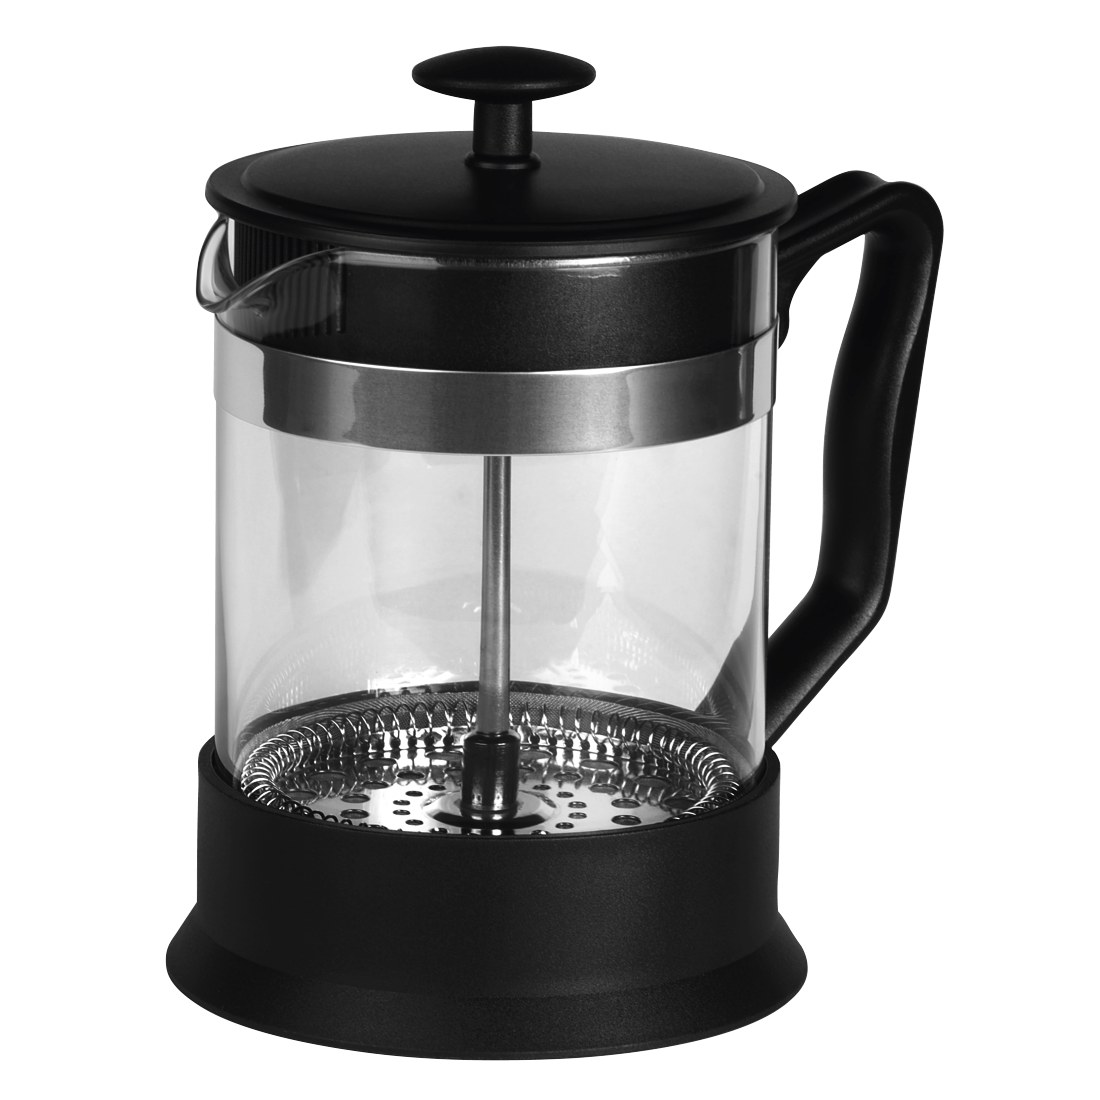 Abx High Res Image Xavax Tea Coffee Maker 0 6 Litres